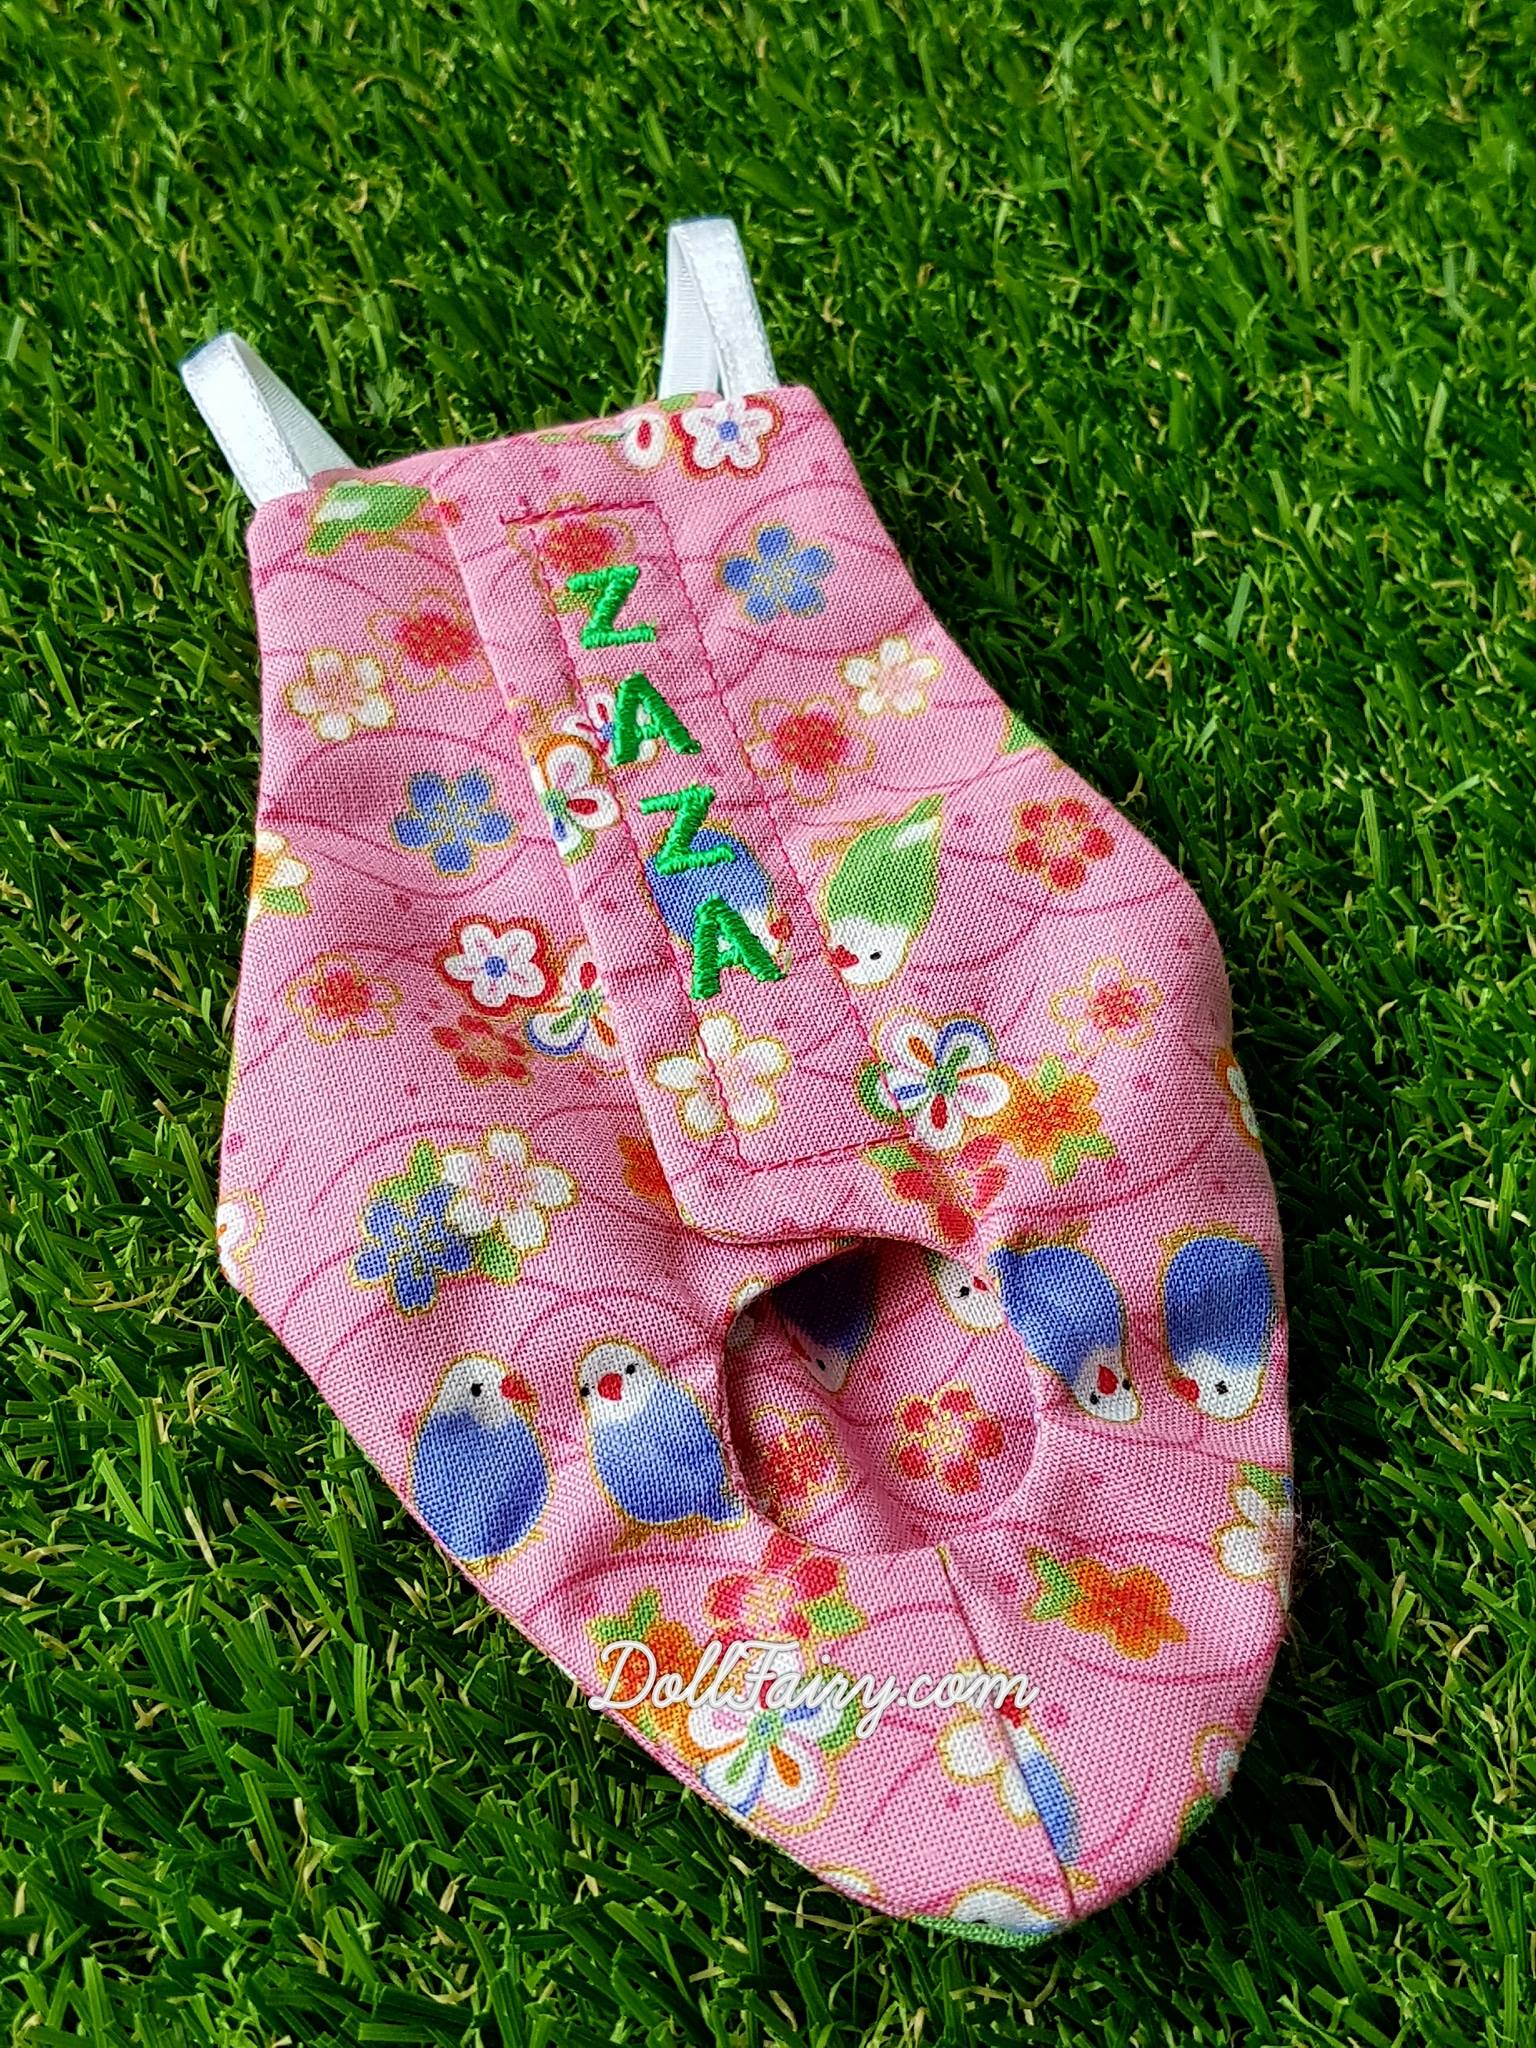 A floral pink flight diaper suit for Zaza, the adorable Caique parrot. Her name is embroidered for a touch of personalisation.